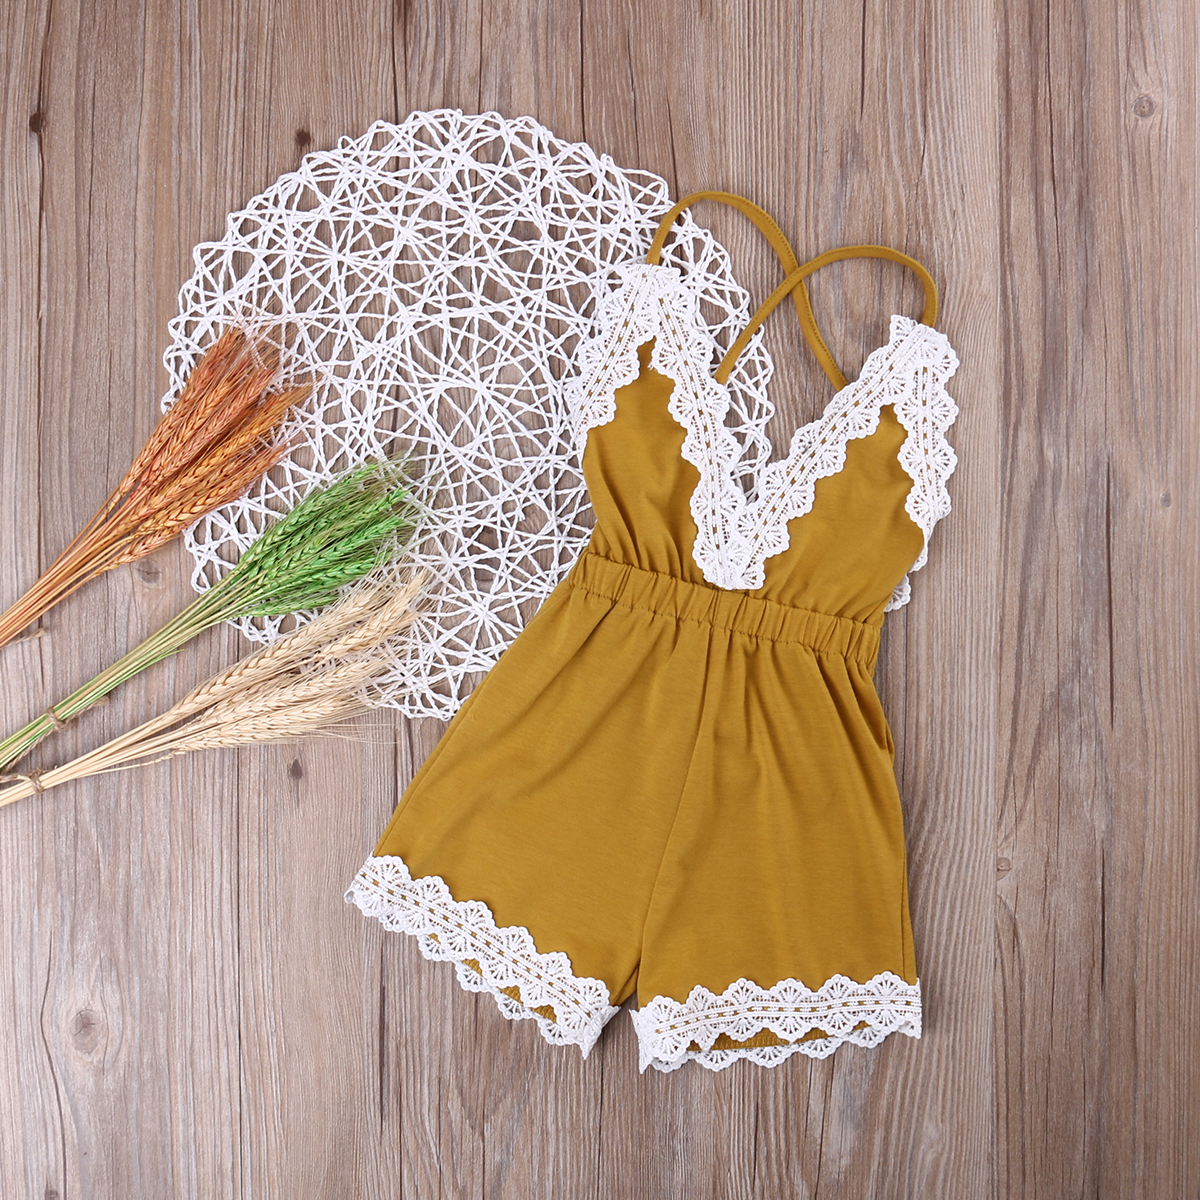 Adorable Newborn Baby Girls Clothing Romper Sleeveless Backless V Neck Jumpsuit Flower Outfits Clothes New купить в Москве 2019